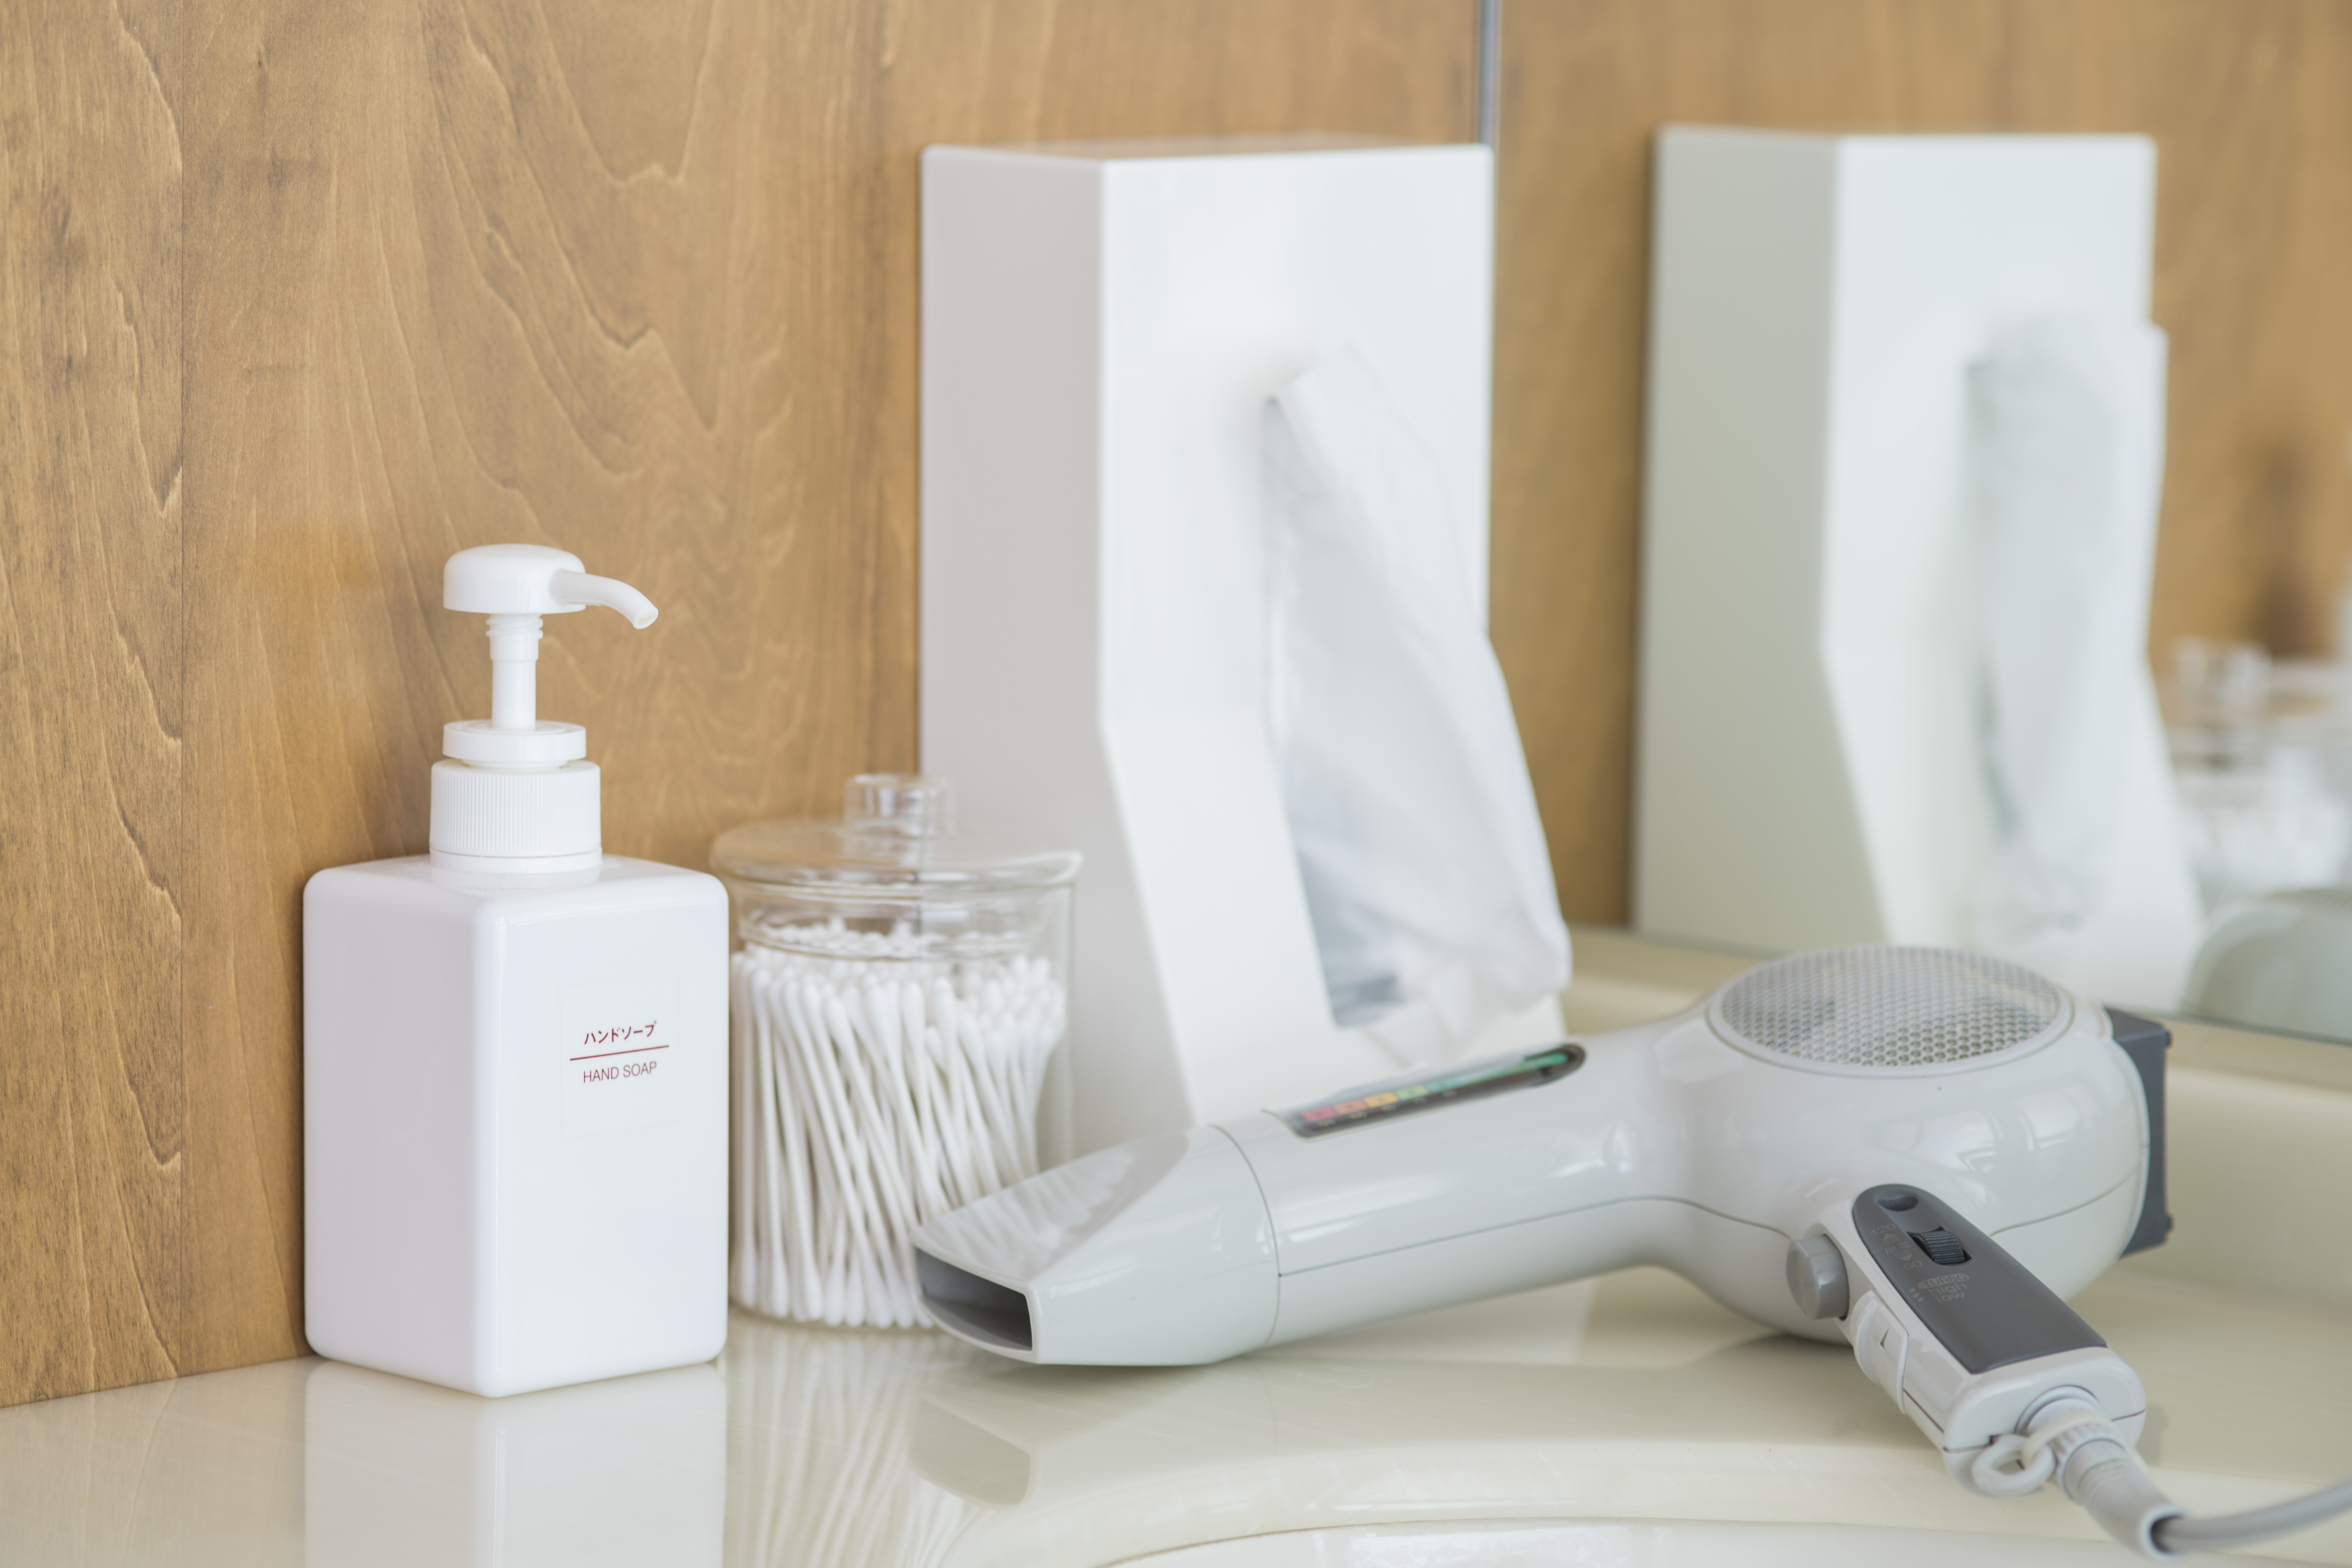 Large Shared Bath Sink (Hand Soap・Cotton Swabs・Tissue・Hair Dryer)